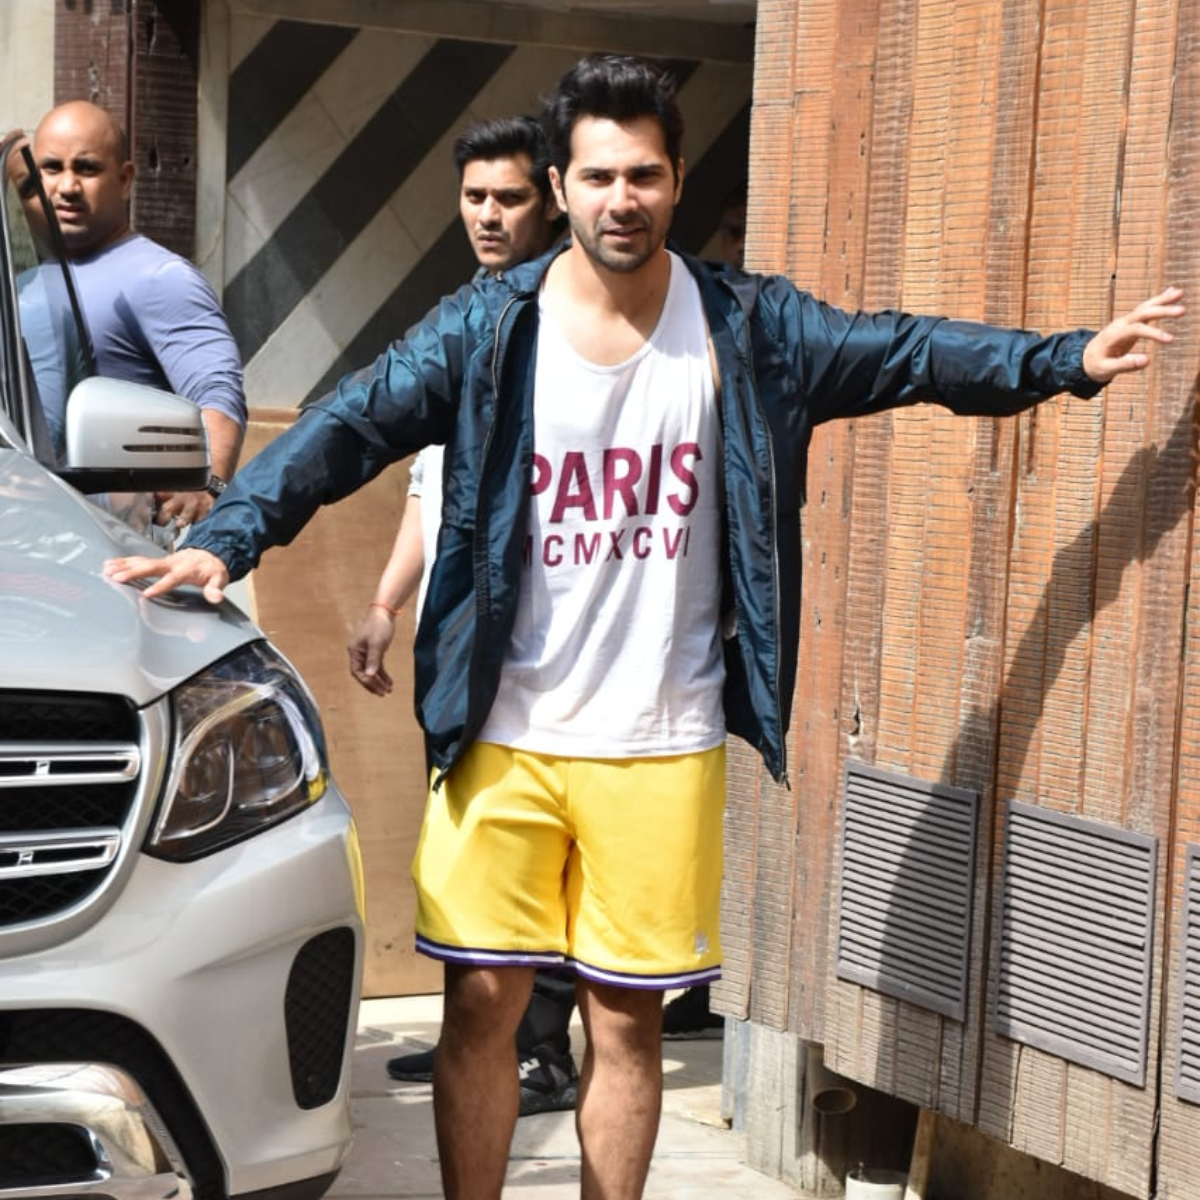 PHOTOS: Varun Dhawan completely nails his casual athleisure as he goes out and about in the city